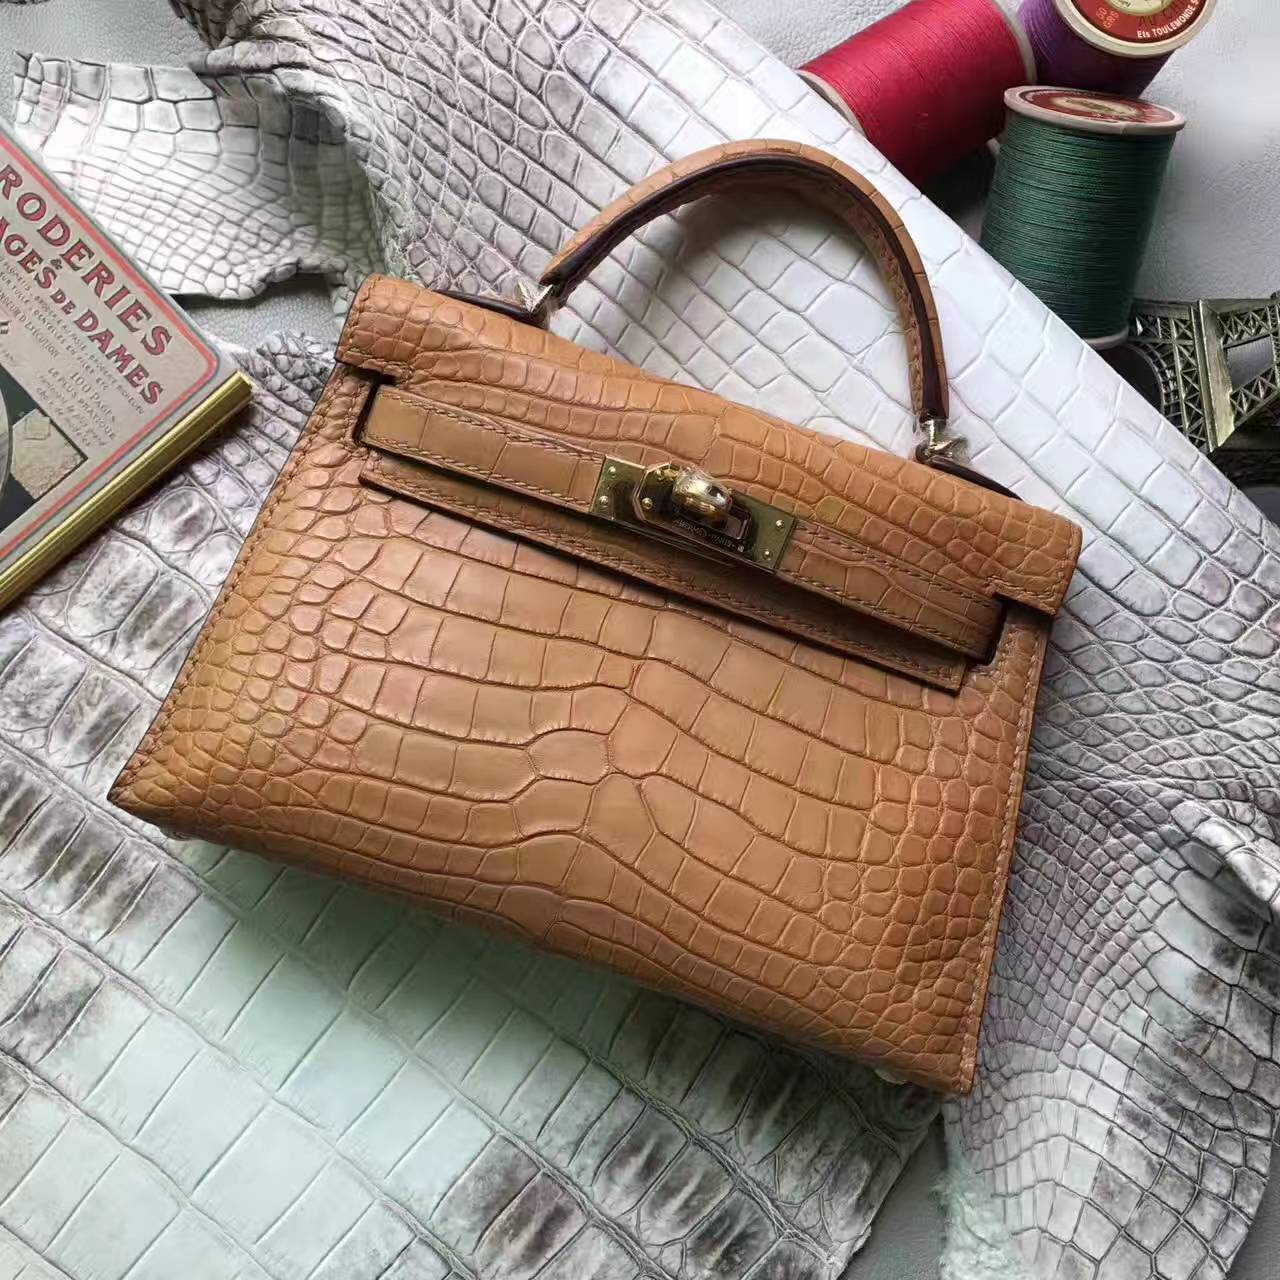 Wholesale Hermes Cognac Crocodile Shiny Leather Minikelly-2 Handbag